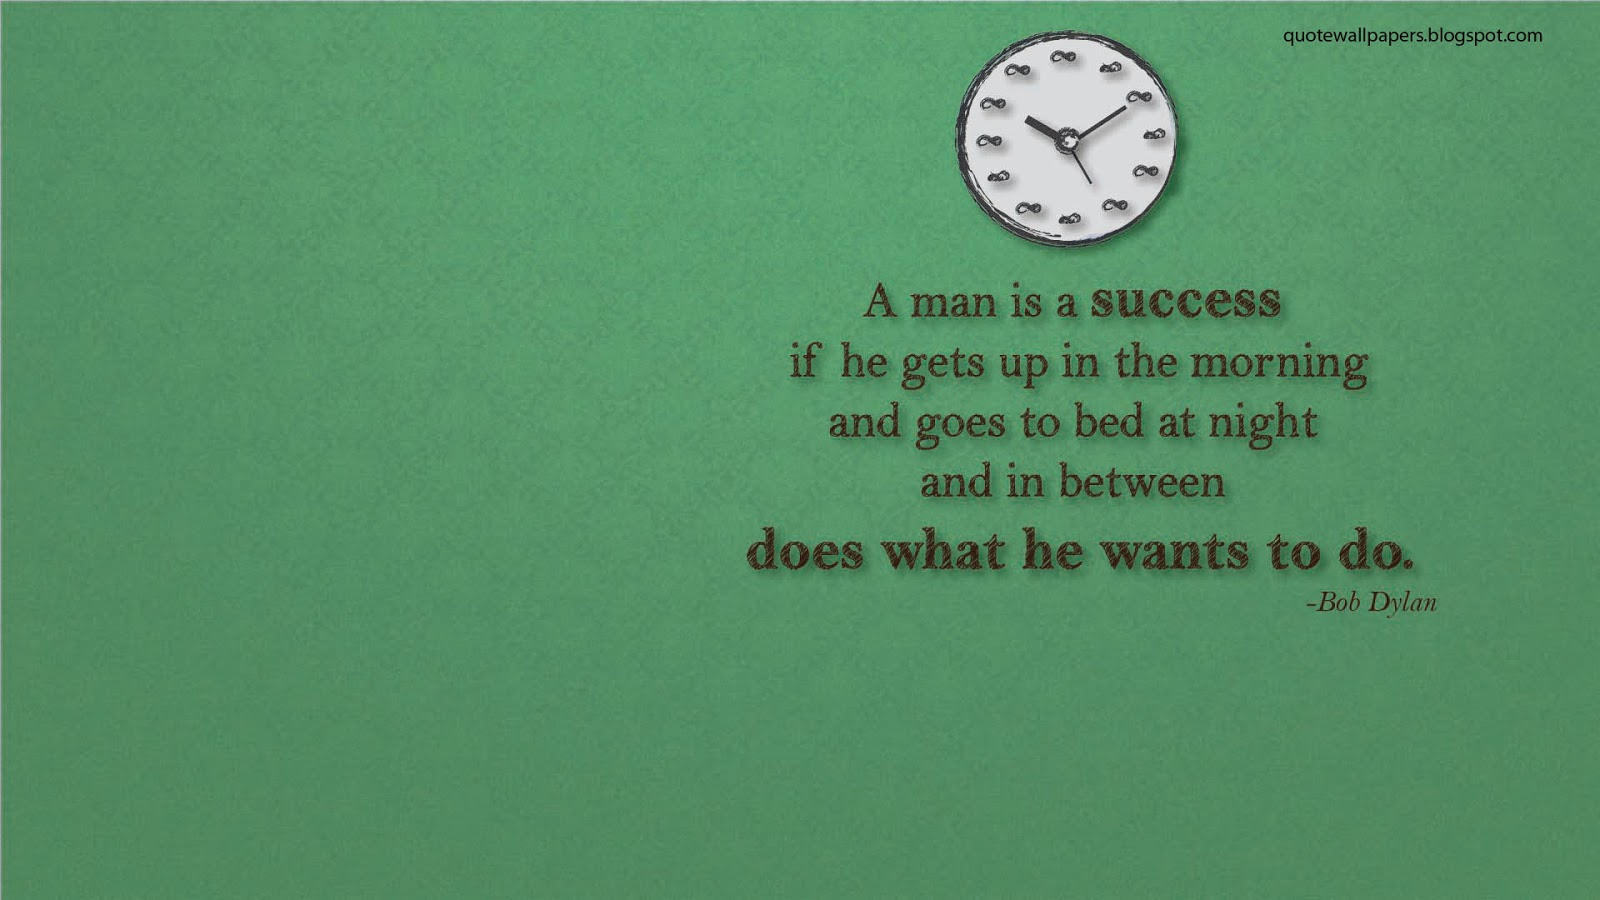 Man is a success if he gets up in the morning and goes to bed at